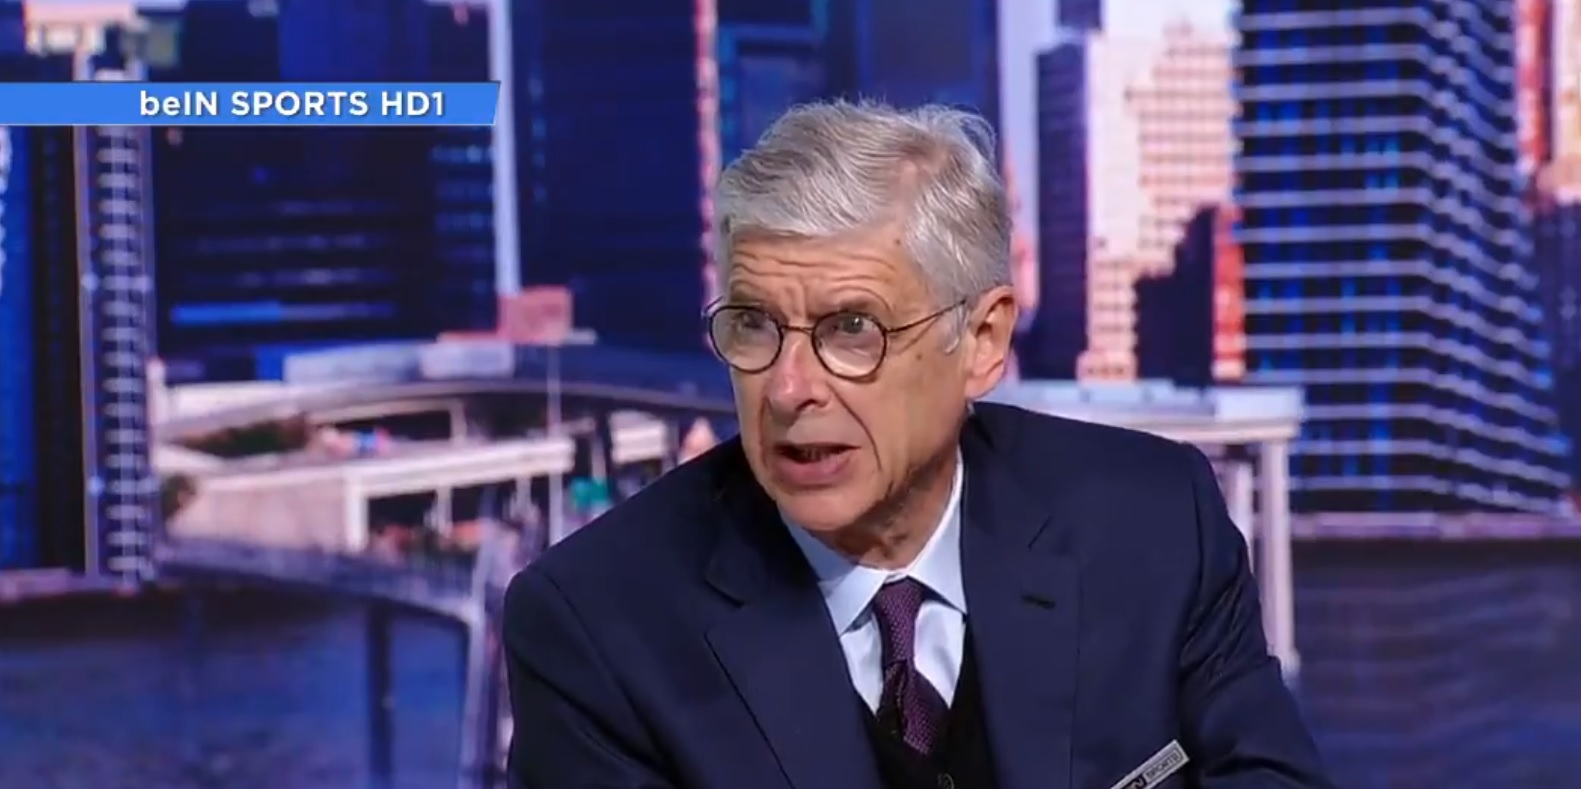 (Video) Wenger accuses Liverpool of 'lacking charisma' in their performance against Everton